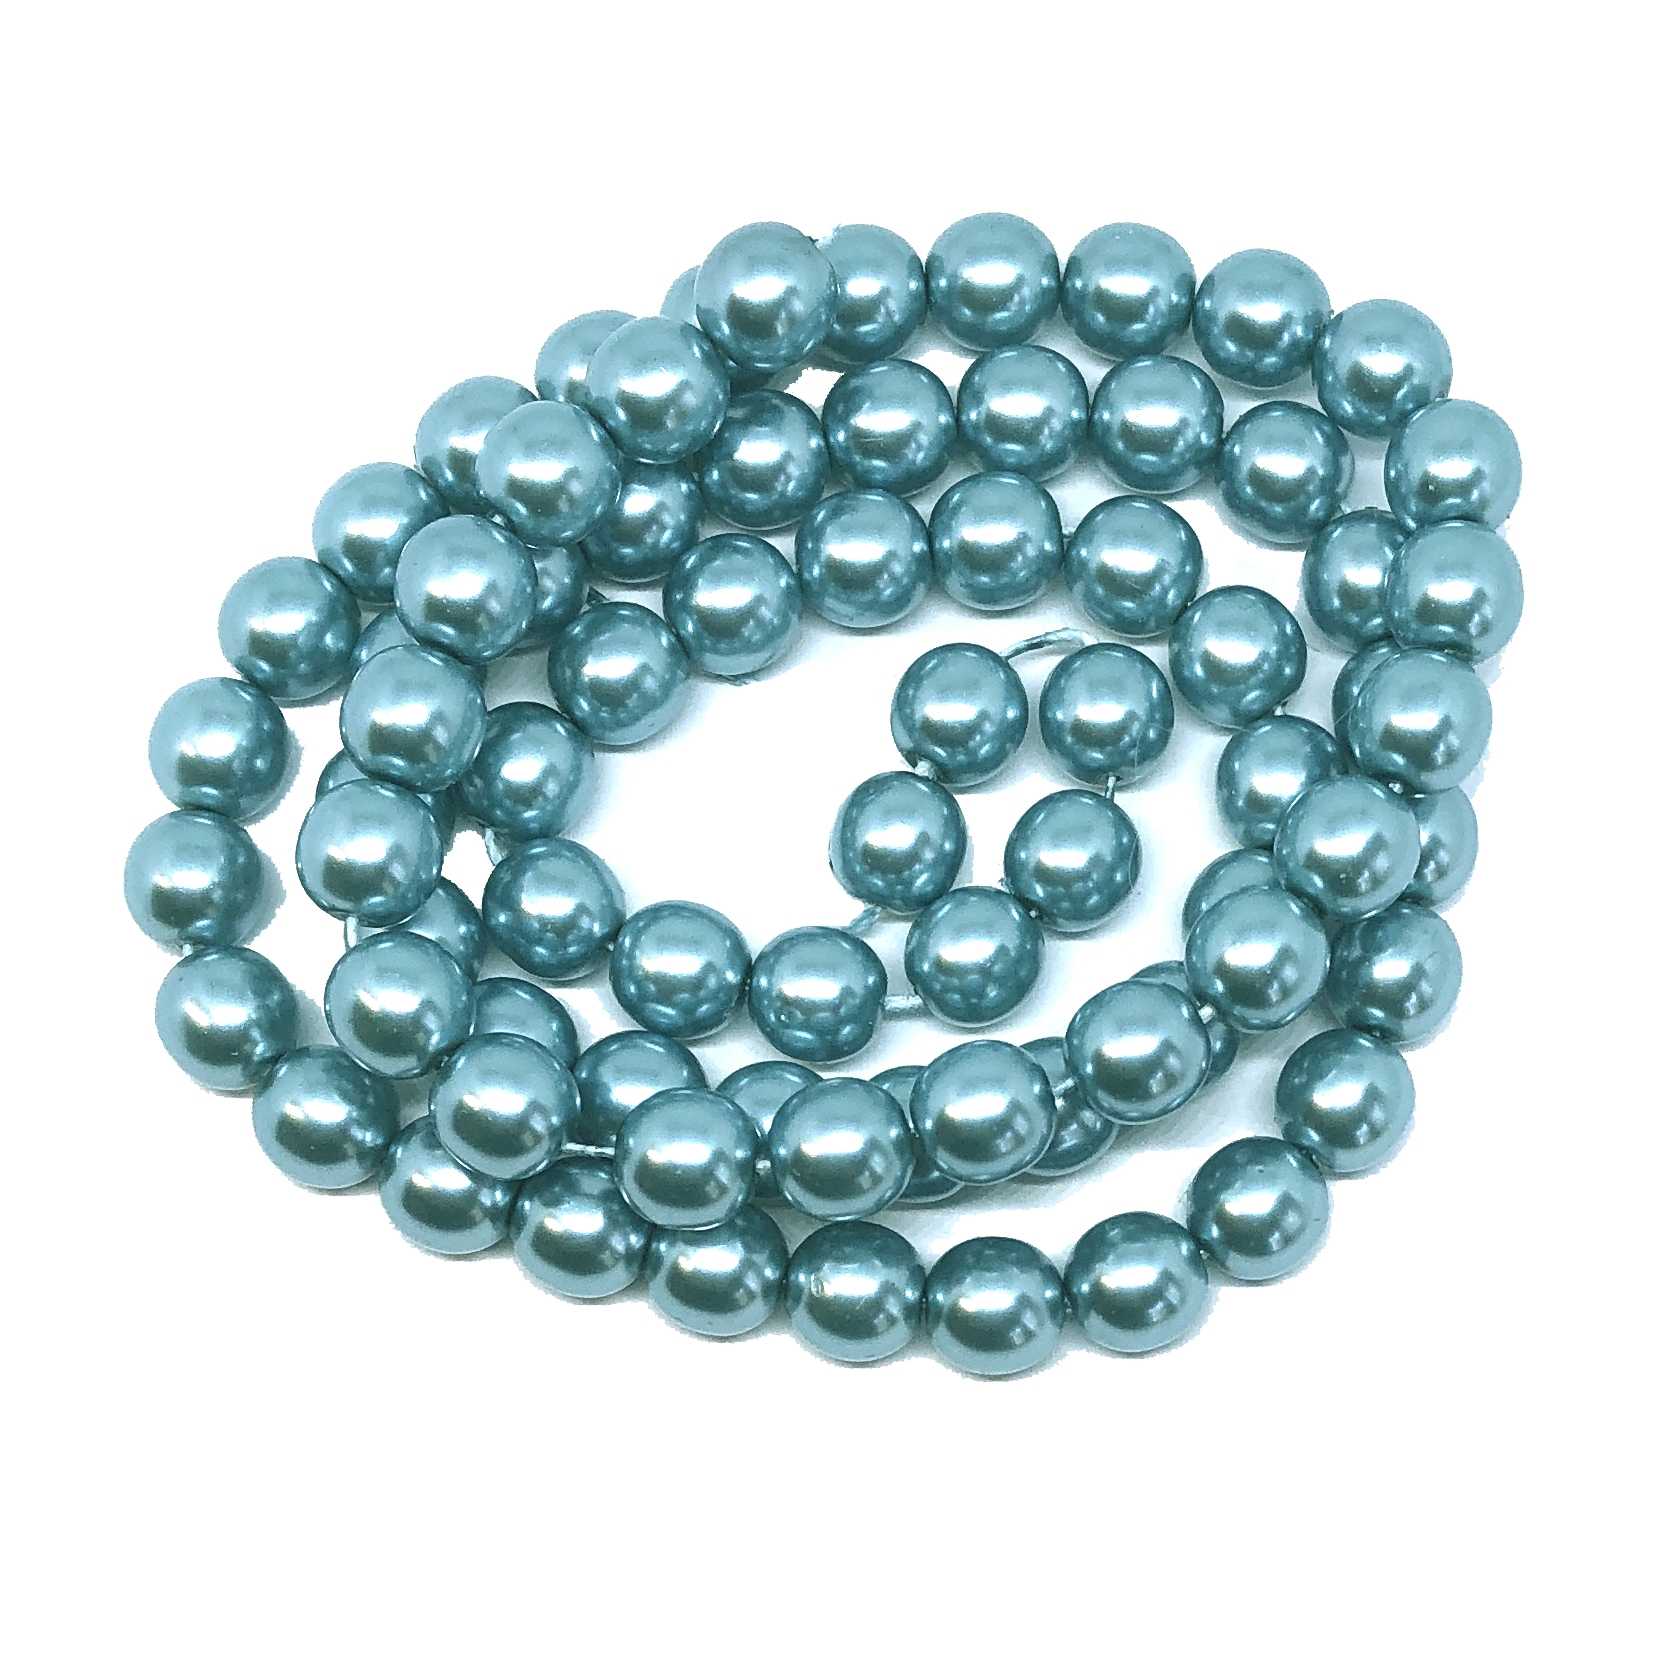 Cerulean pearl beads, green blue pearl beads, 8mm bead, glass pearl, Czech, B'sue Boutiques, bead, jewelry making, beading supplies, vintage supplies, pearl, pearl beads, glass beads, blue-green beads, 09671